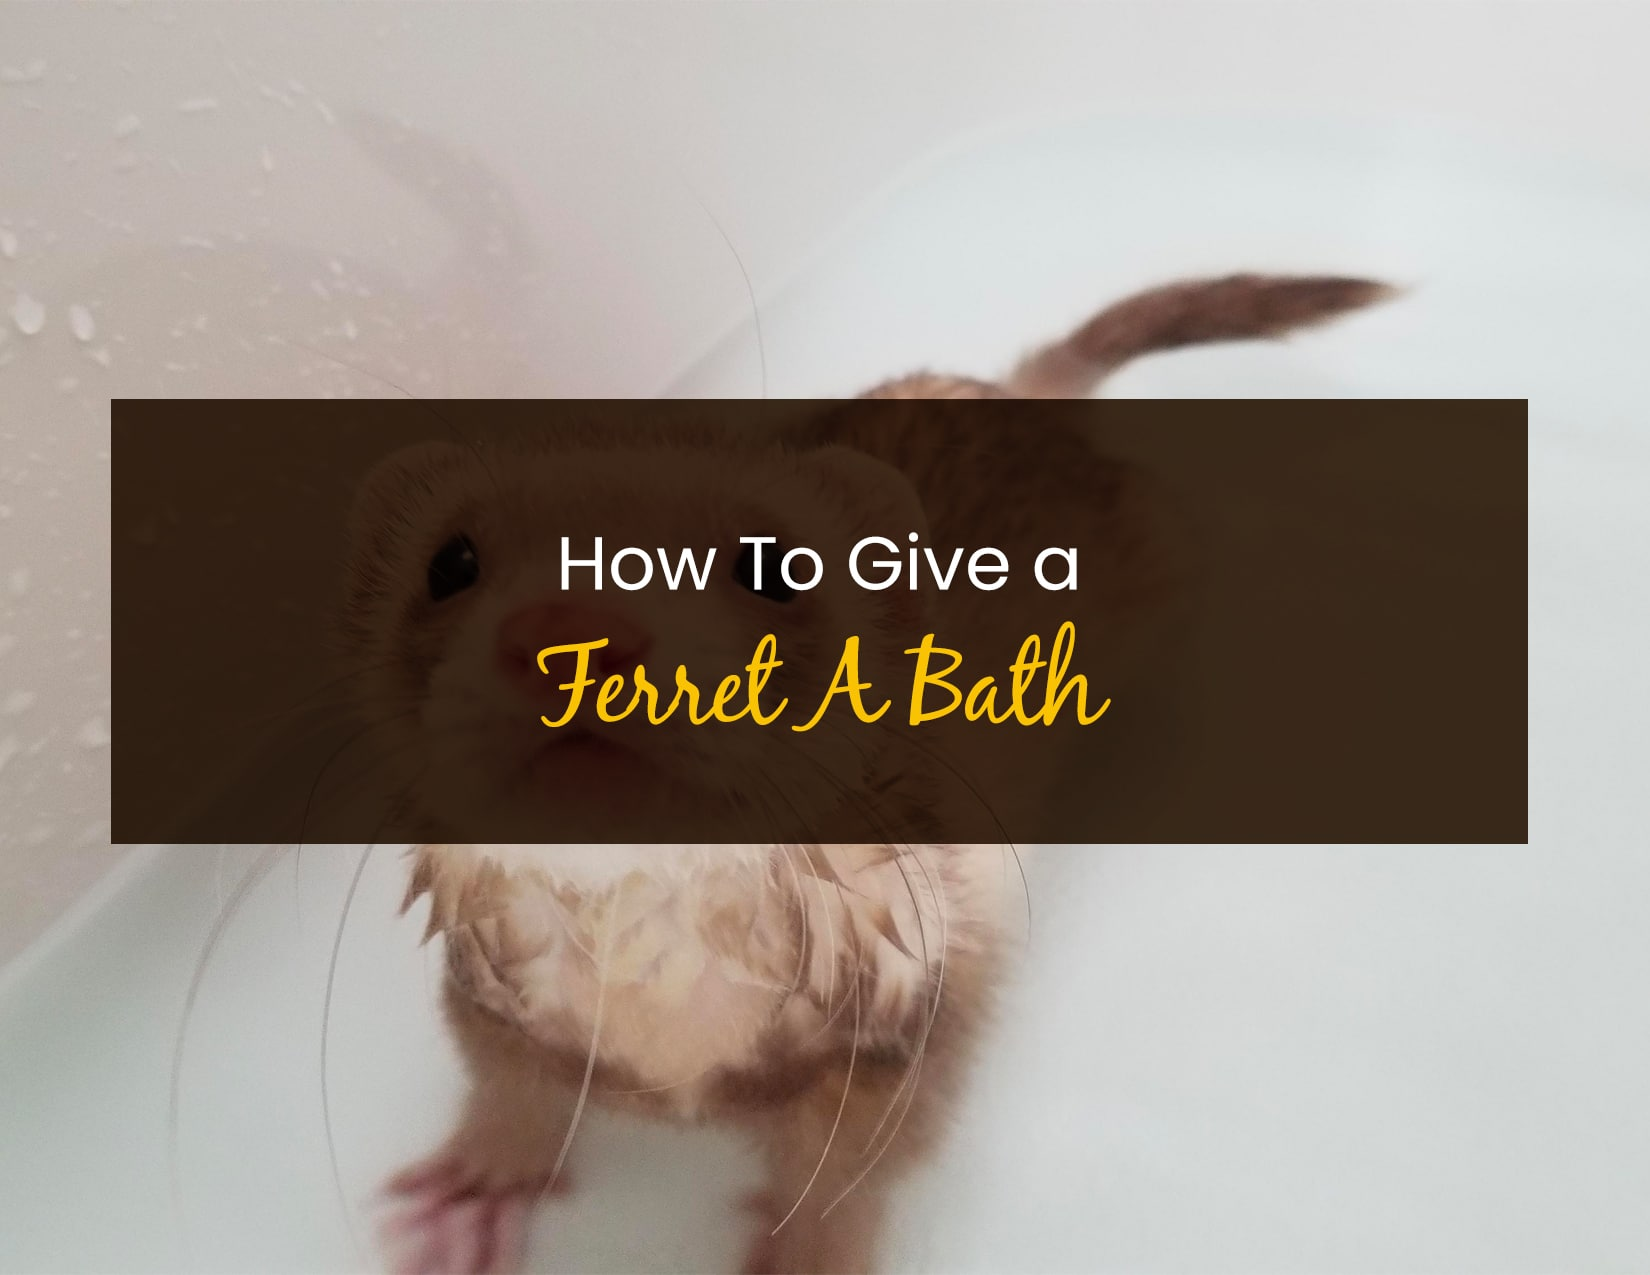 How To Give A Ferret A Bath - WP